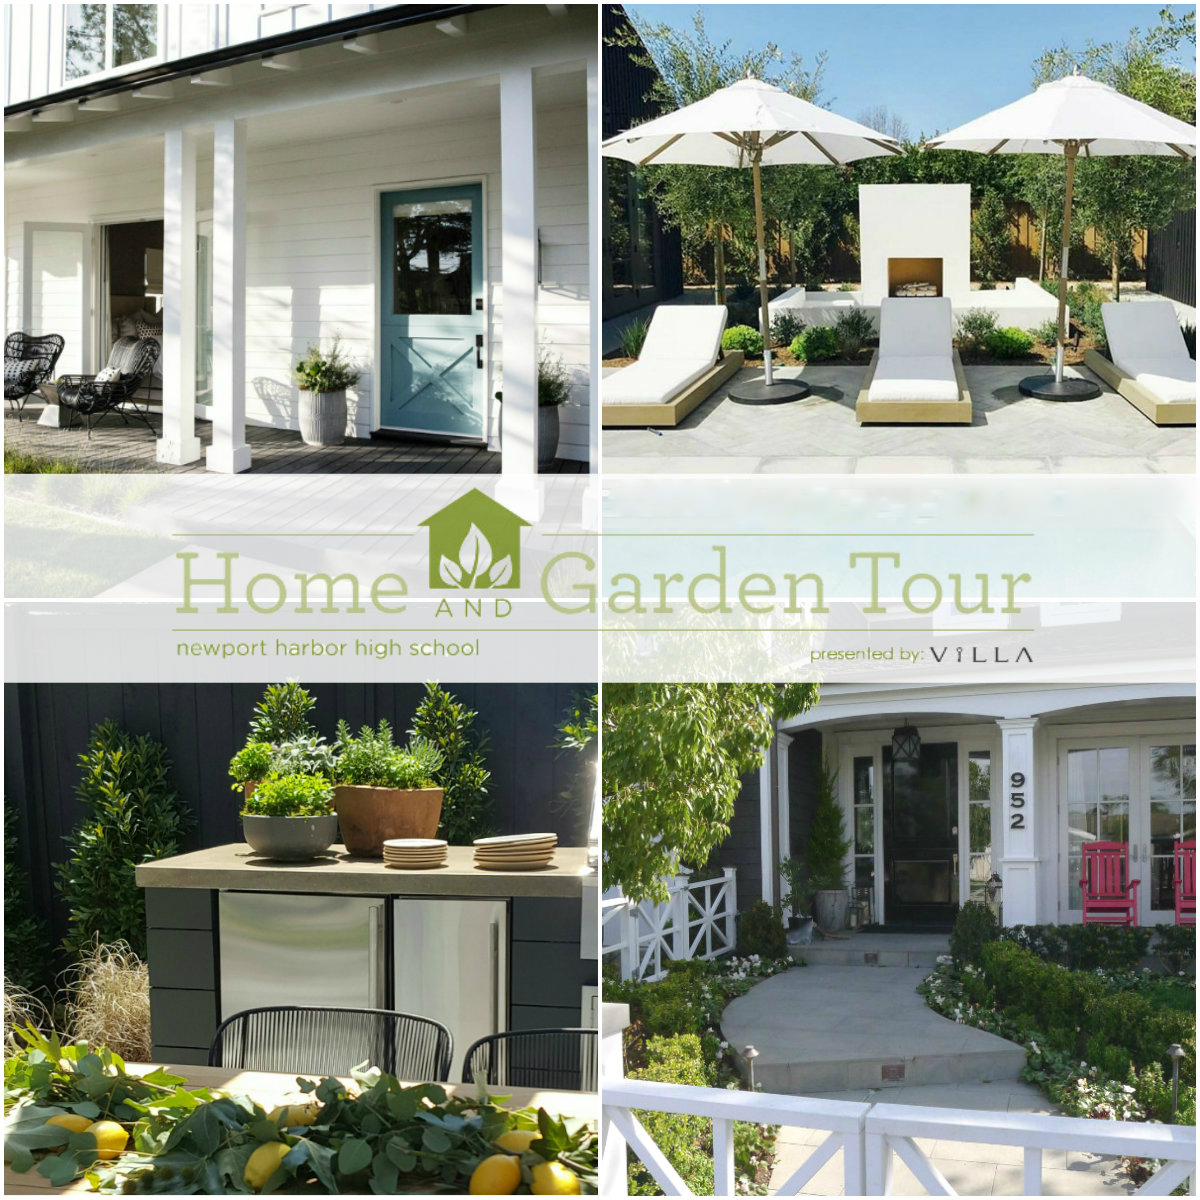 An image of a Home Tour 2018 Collage